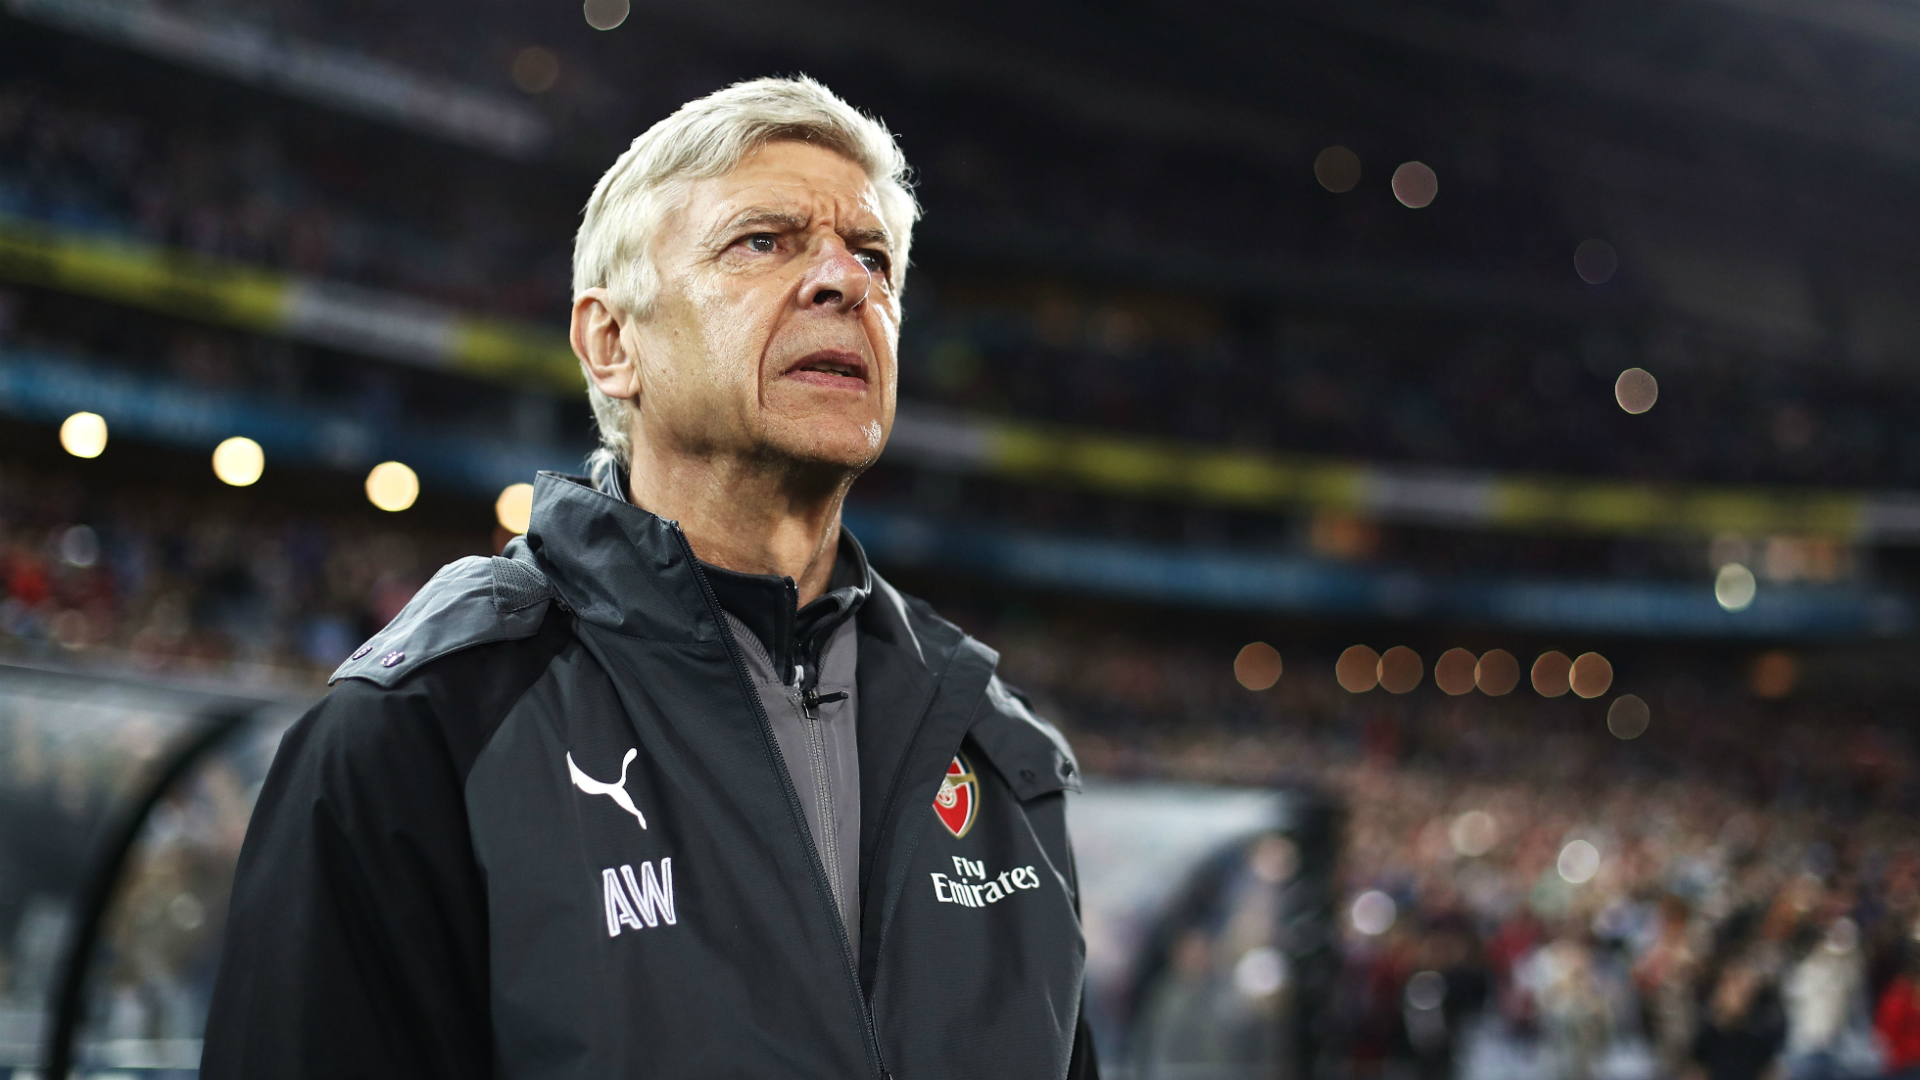 Arsene Wenger Reveals He Turned Down Premier League Offers After Leaving Arsenal